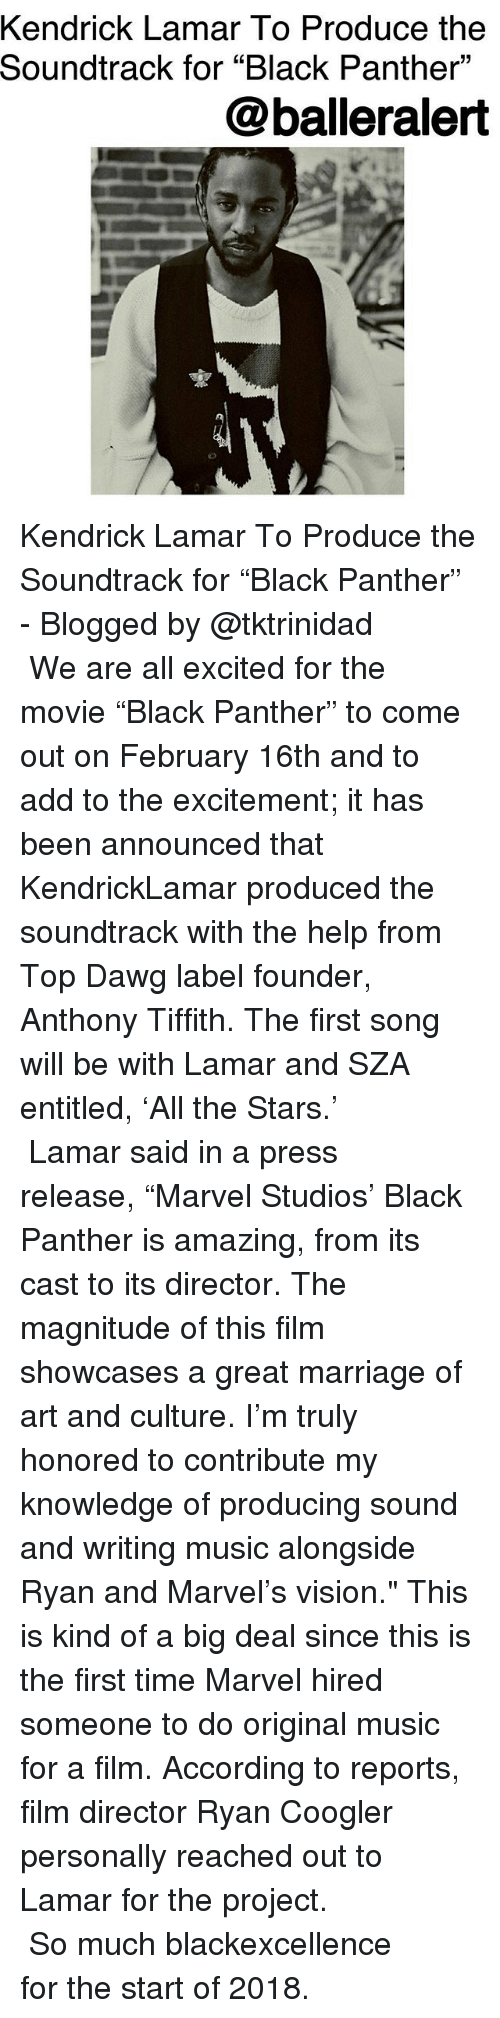 """Ryan Coogler: Kendrick Lamar To Produce the  Soundtrack for """"Black Panther""""  @balleralert  09 Kendrick Lamar To Produce the Soundtrack for """"Black Panther"""" - Blogged by @tktrinidad ⠀⠀⠀⠀⠀⠀⠀⠀ ⠀⠀⠀⠀⠀⠀⠀⠀ We are all excited for the movie """"Black Panther"""" to come out on February 16th and to add to the excitement; it has been announced that KendrickLamar produced the soundtrack with the help from Top Dawg label founder, Anthony Tiffith. The first song will be with Lamar and SZA entitled, 'All the Stars.' ⠀⠀⠀⠀⠀⠀⠀⠀ ⠀⠀⠀⠀⠀⠀⠀⠀ Lamar said in a press release, """"Marvel Studios' Black Panther is amazing, from its cast to its director. The magnitude of this film showcases a great marriage of art and culture. I'm truly honored to contribute my knowledge of producing sound and writing music alongside Ryan and Marvel's vision."""" This is kind of a big deal since this is the first time Marvel hired someone to do original music for a film. According to reports, film director Ryan Coogler personally reached out to Lamar for the project. ⠀⠀⠀⠀⠀⠀⠀⠀ ⠀⠀⠀⠀⠀⠀⠀⠀ So much blackexcellence for the start of 2018."""